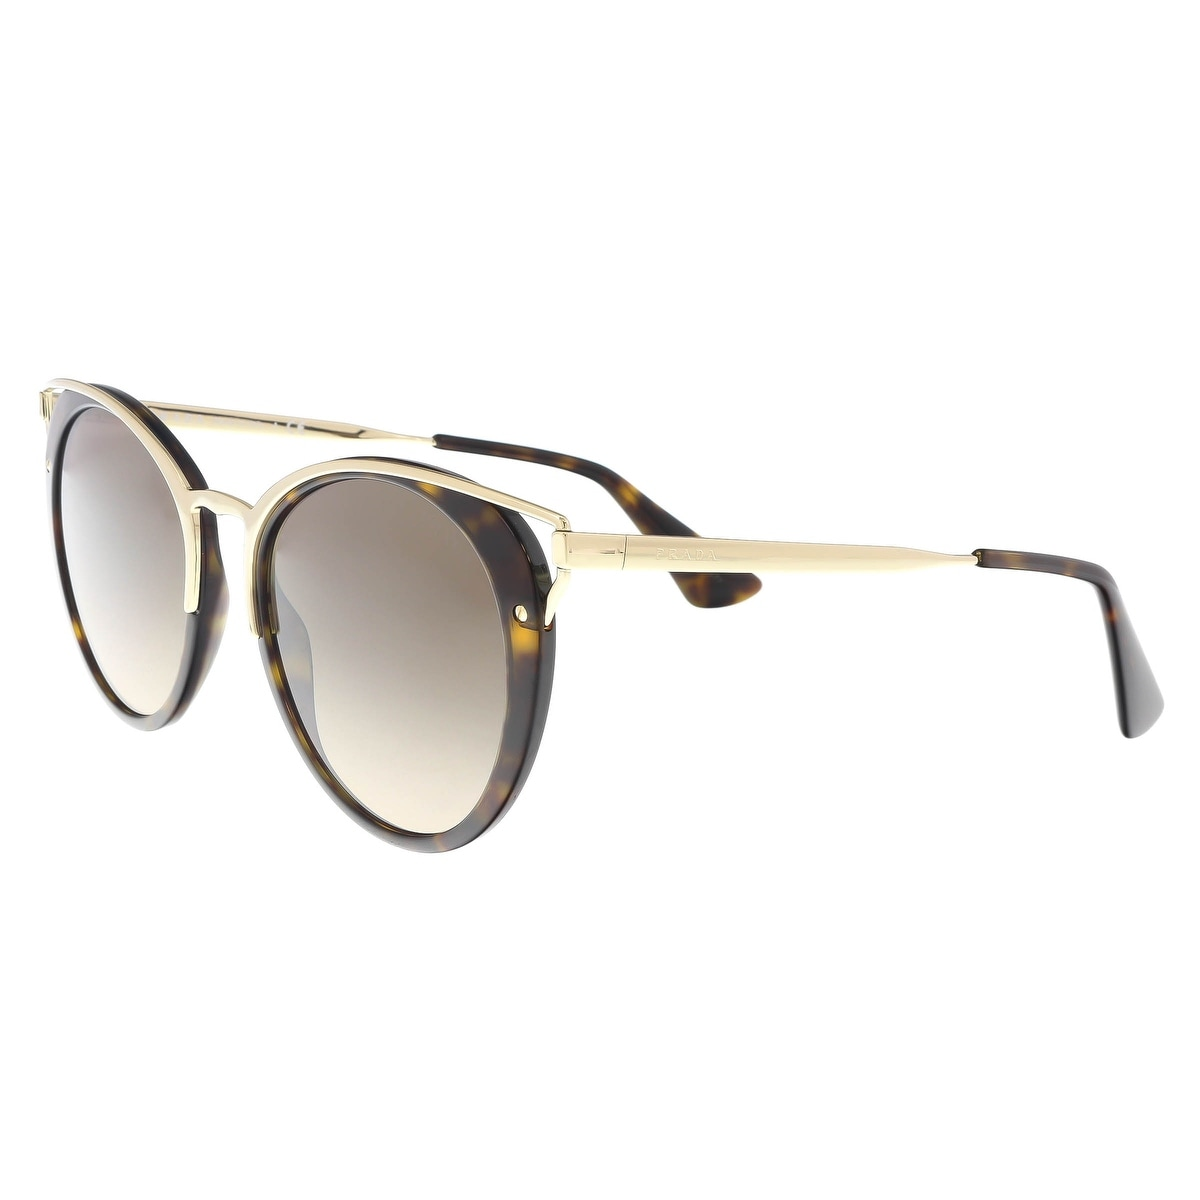 e2b91368b0ed Shop Prada PR66TS 2AU3D0 Havana Cat eye Sunglasses - 54-20-145 - Free  Shipping Today - Overstock - 21529246